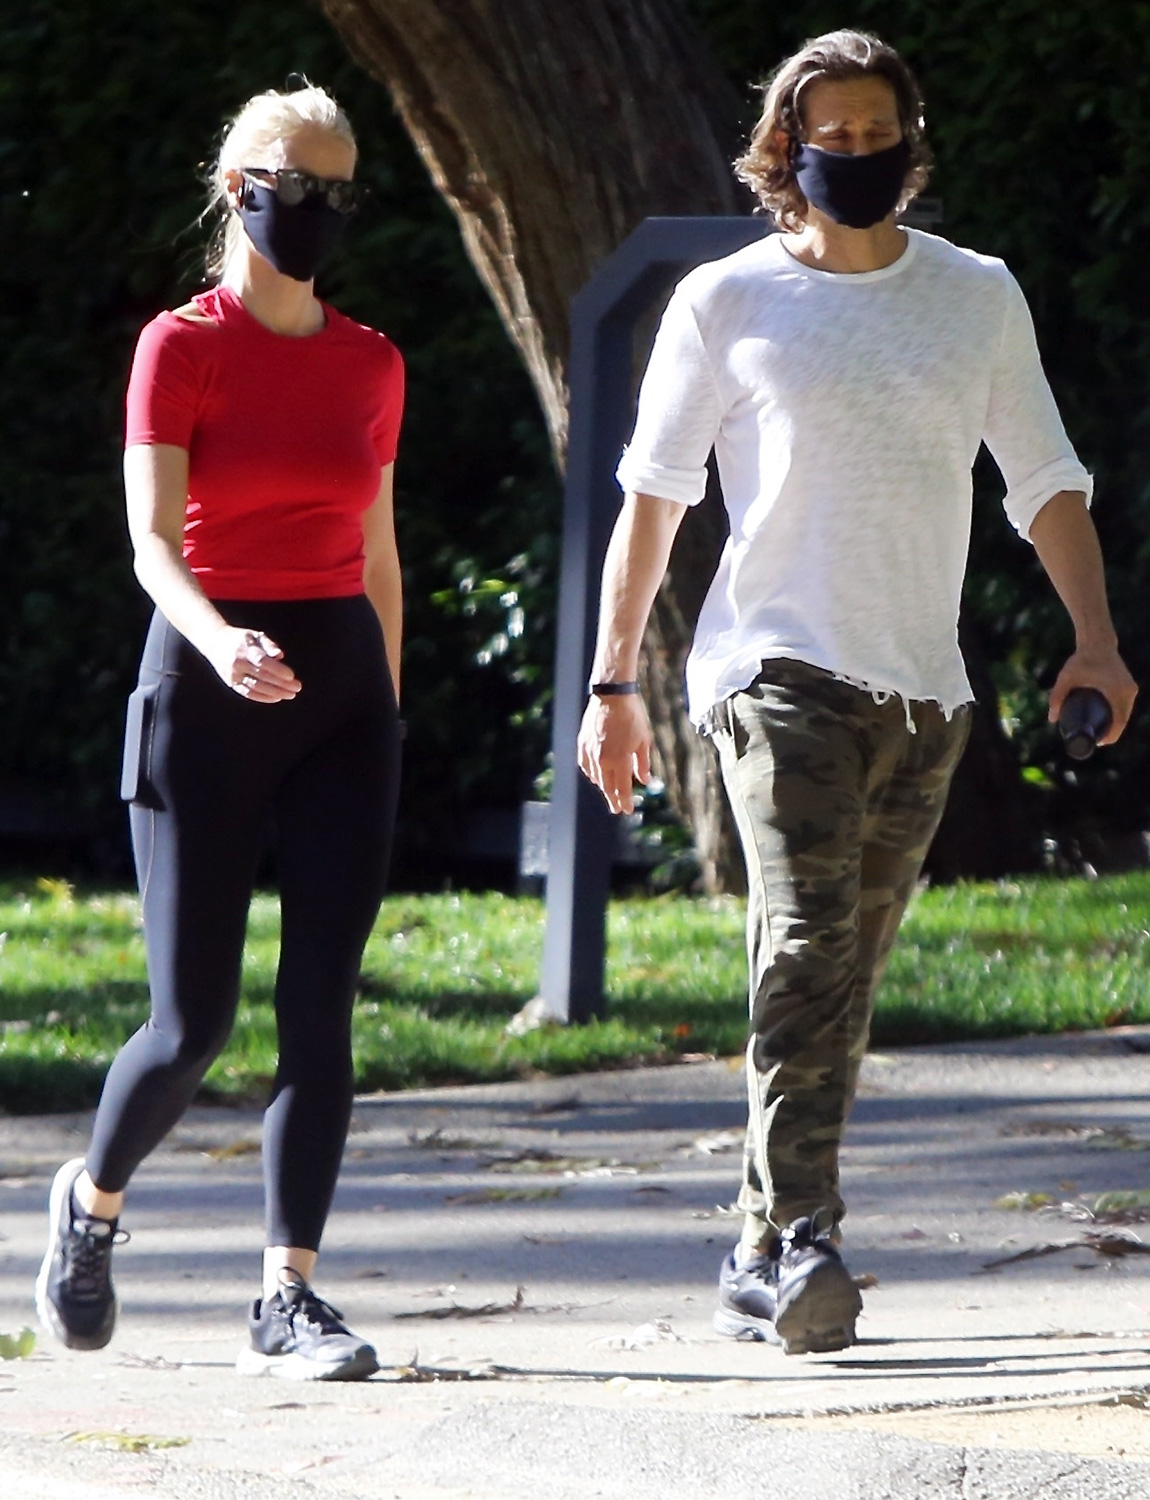 Gwyneth Paltrow and Brad Falchuk On Romantic Stroll